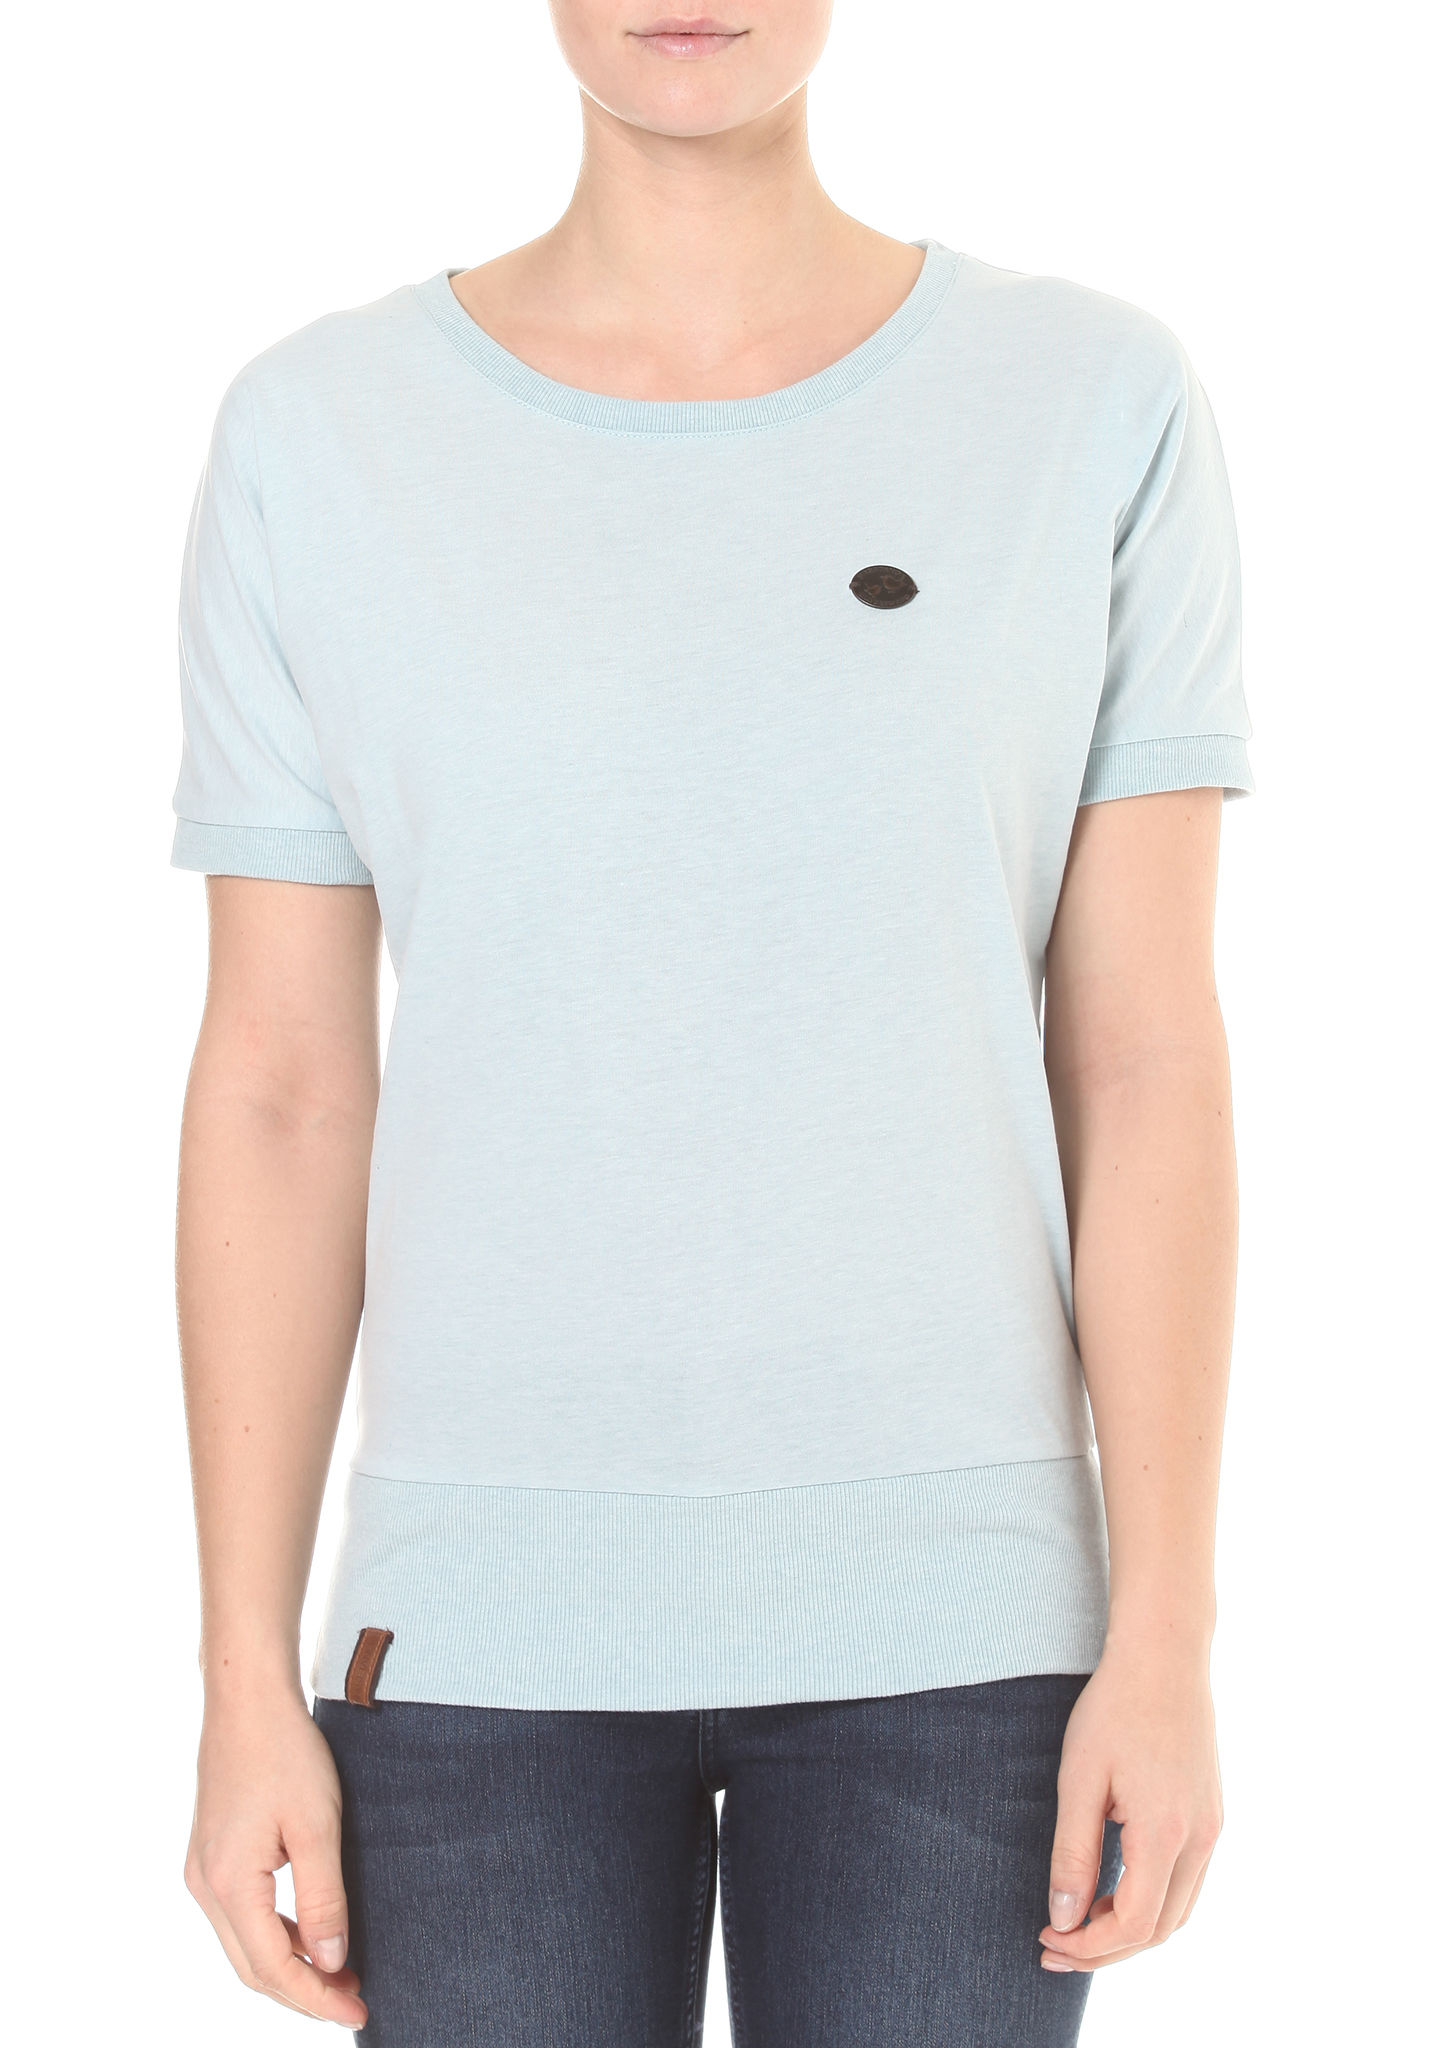 Baunxxx Wit It T-Shirt pastel blue melange Naketano TF2GRqGYf